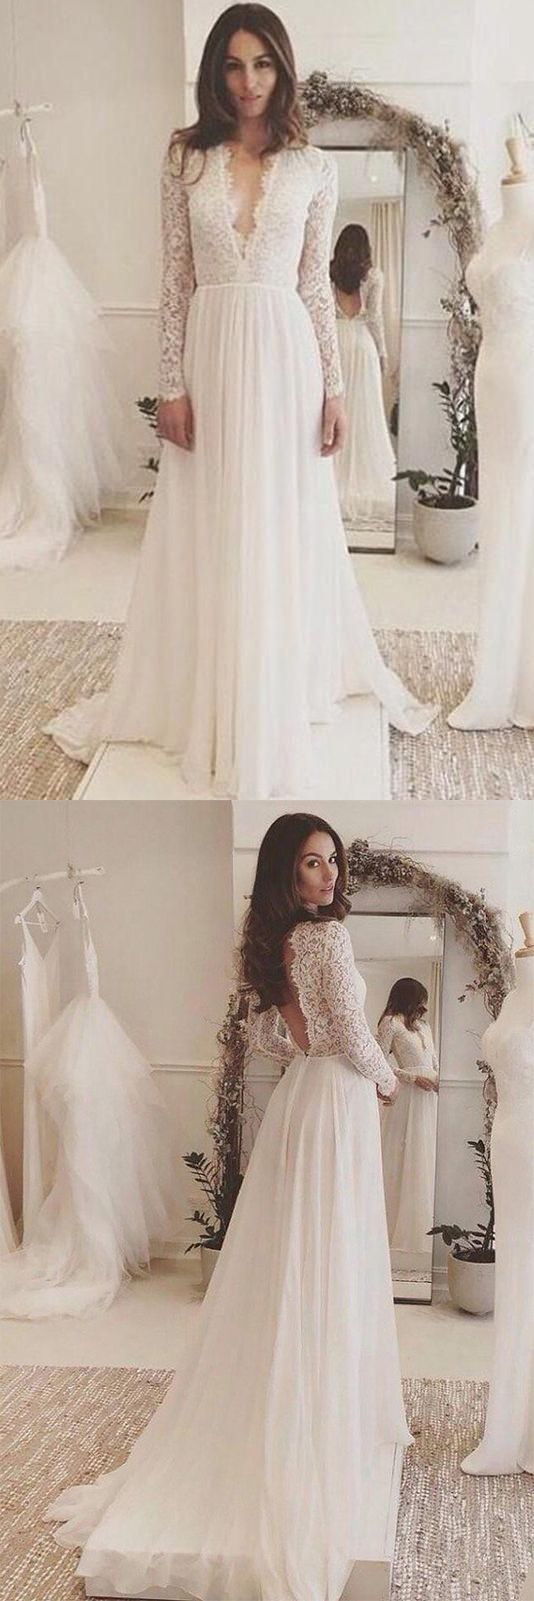 Off White Chiffon Long Sleeves Wedding Dress Simple A Line V Neck Lace Prom Dress Ok868 Lace Vneck Wedding Dress Chiffon Wedding Dresses Lace Wedding Dress Trends [ 1601 x 534 Pixel ]